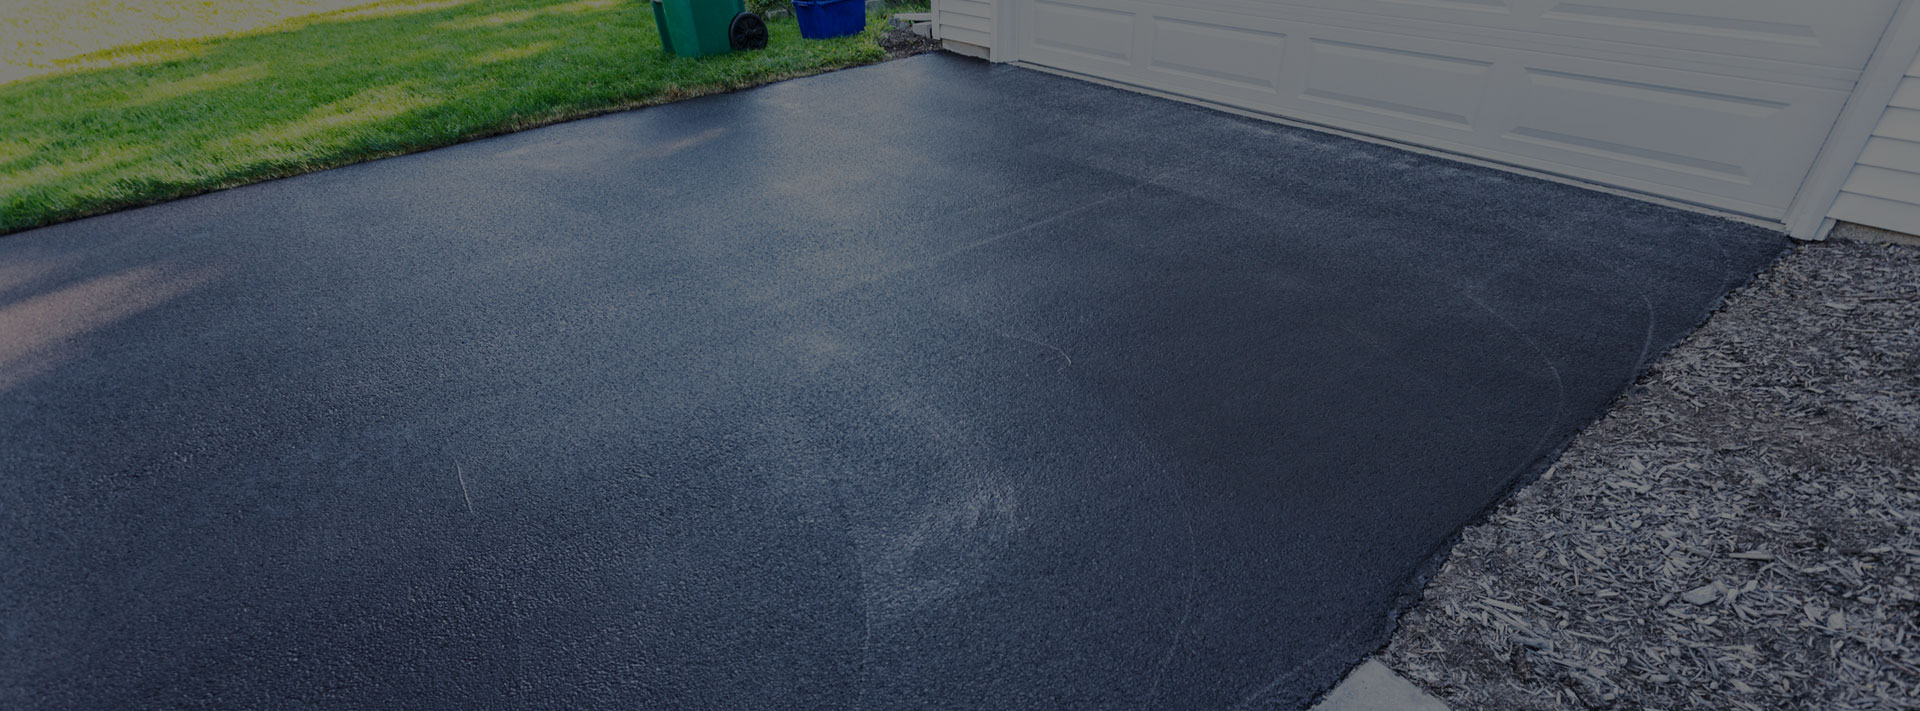 Newly Paved Residential Driveway